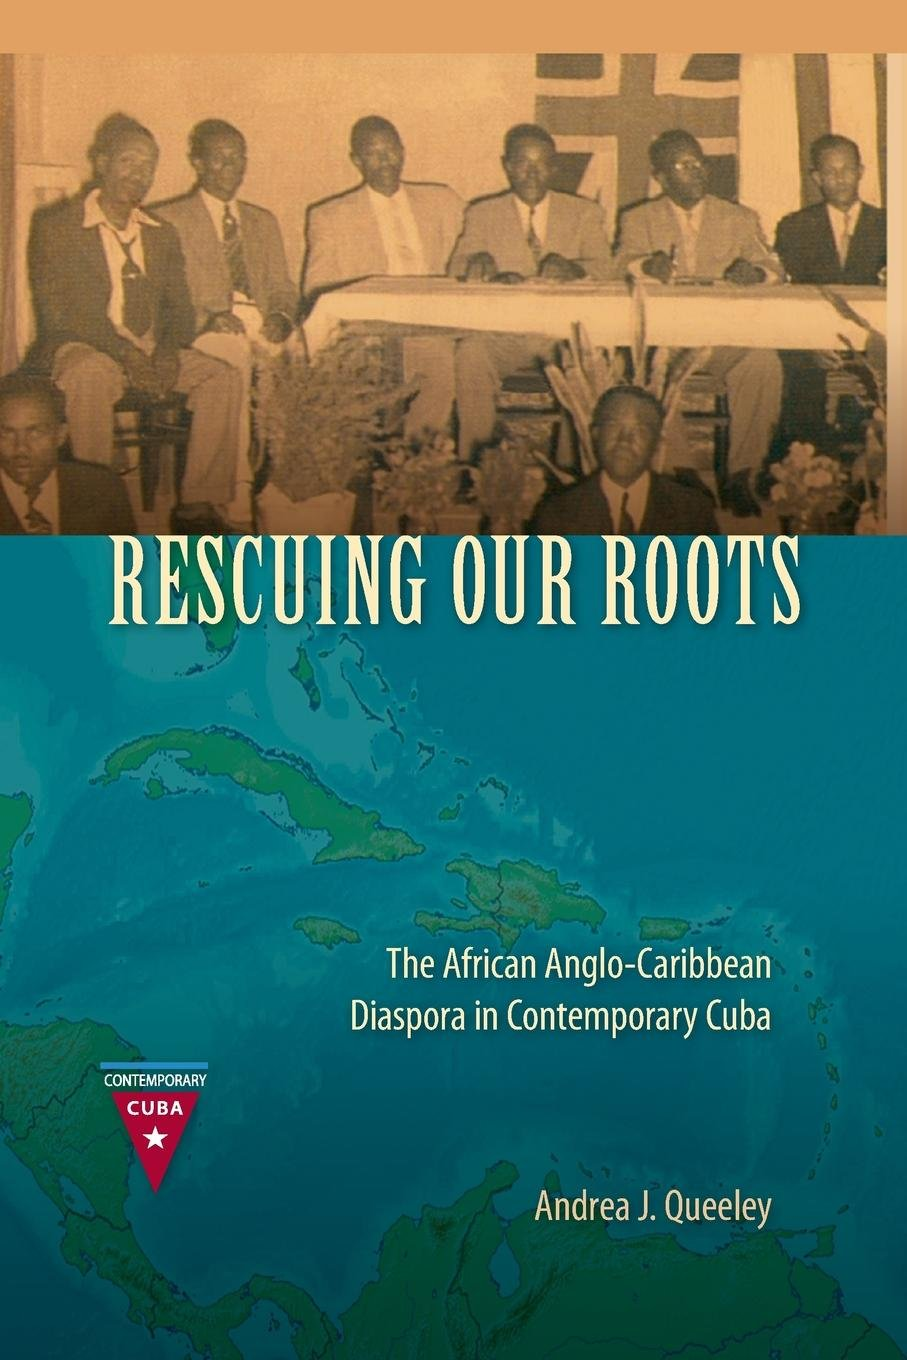 Rescuing Our Roots: The African Anglo-Caribbean Diaspora in Contemporary Cuba pdf